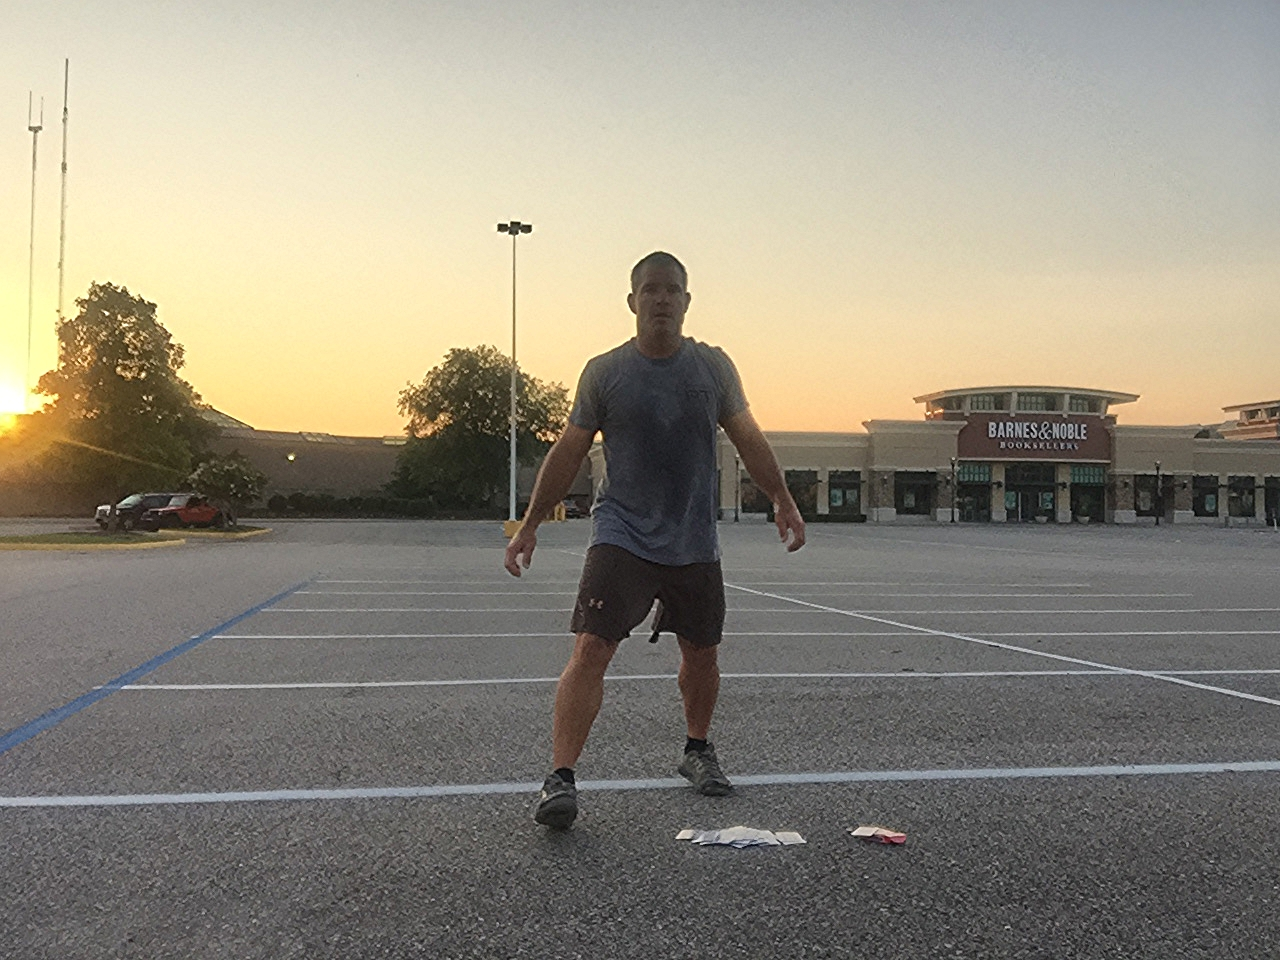 Early morning workout, alone in a parking lot. This time it was the Deck of Cards, but Jelly Legs would have been a great option. The world is your gym. No excuses!